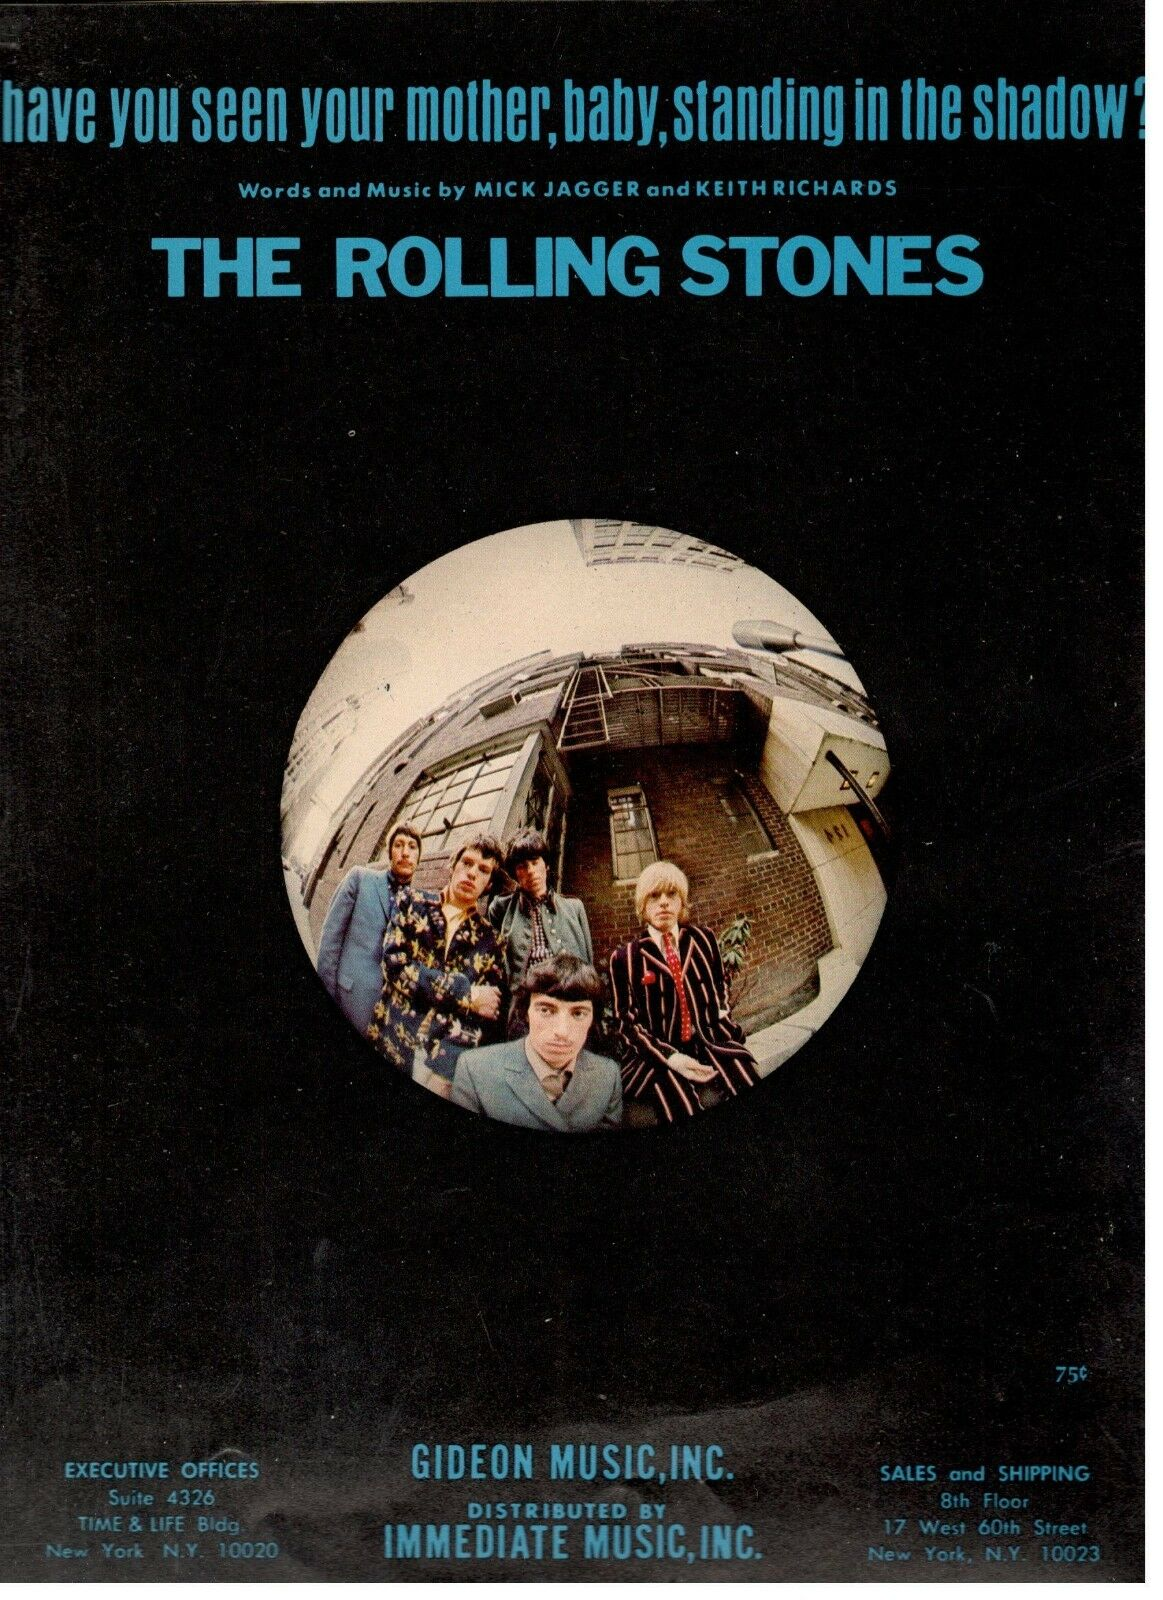 THE STONES-HAVE YOU SEEN YOUR MOTHER, BABY, STANDING IN THE SHADOW SHEET MUSIC